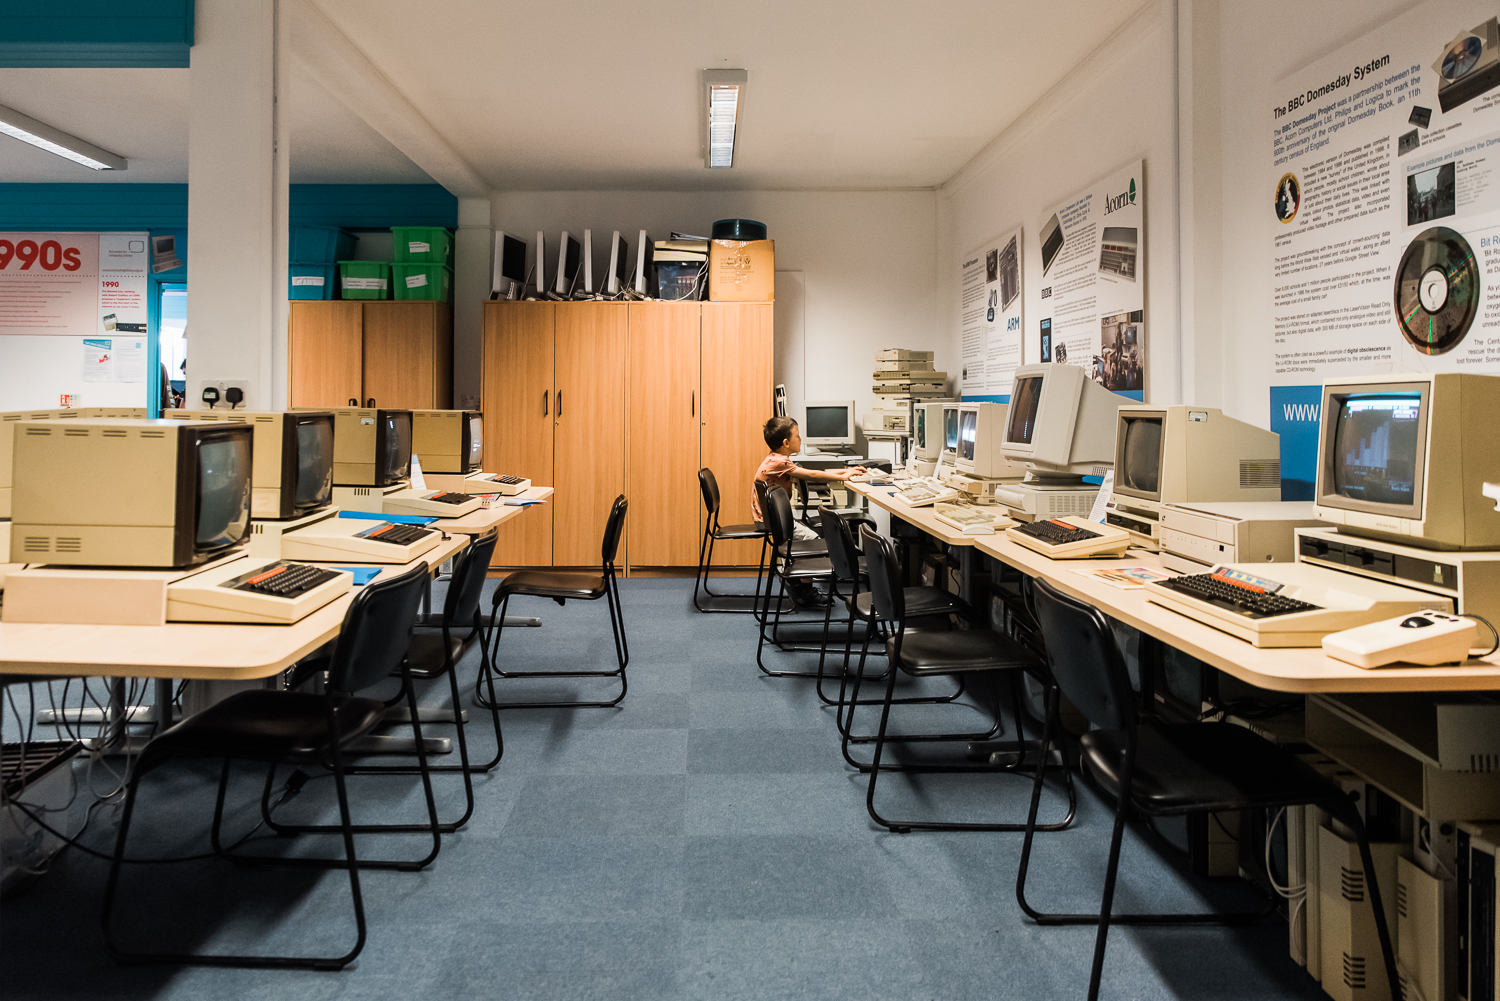 1980s computers classroom at the Museum of computing history, Cambridge